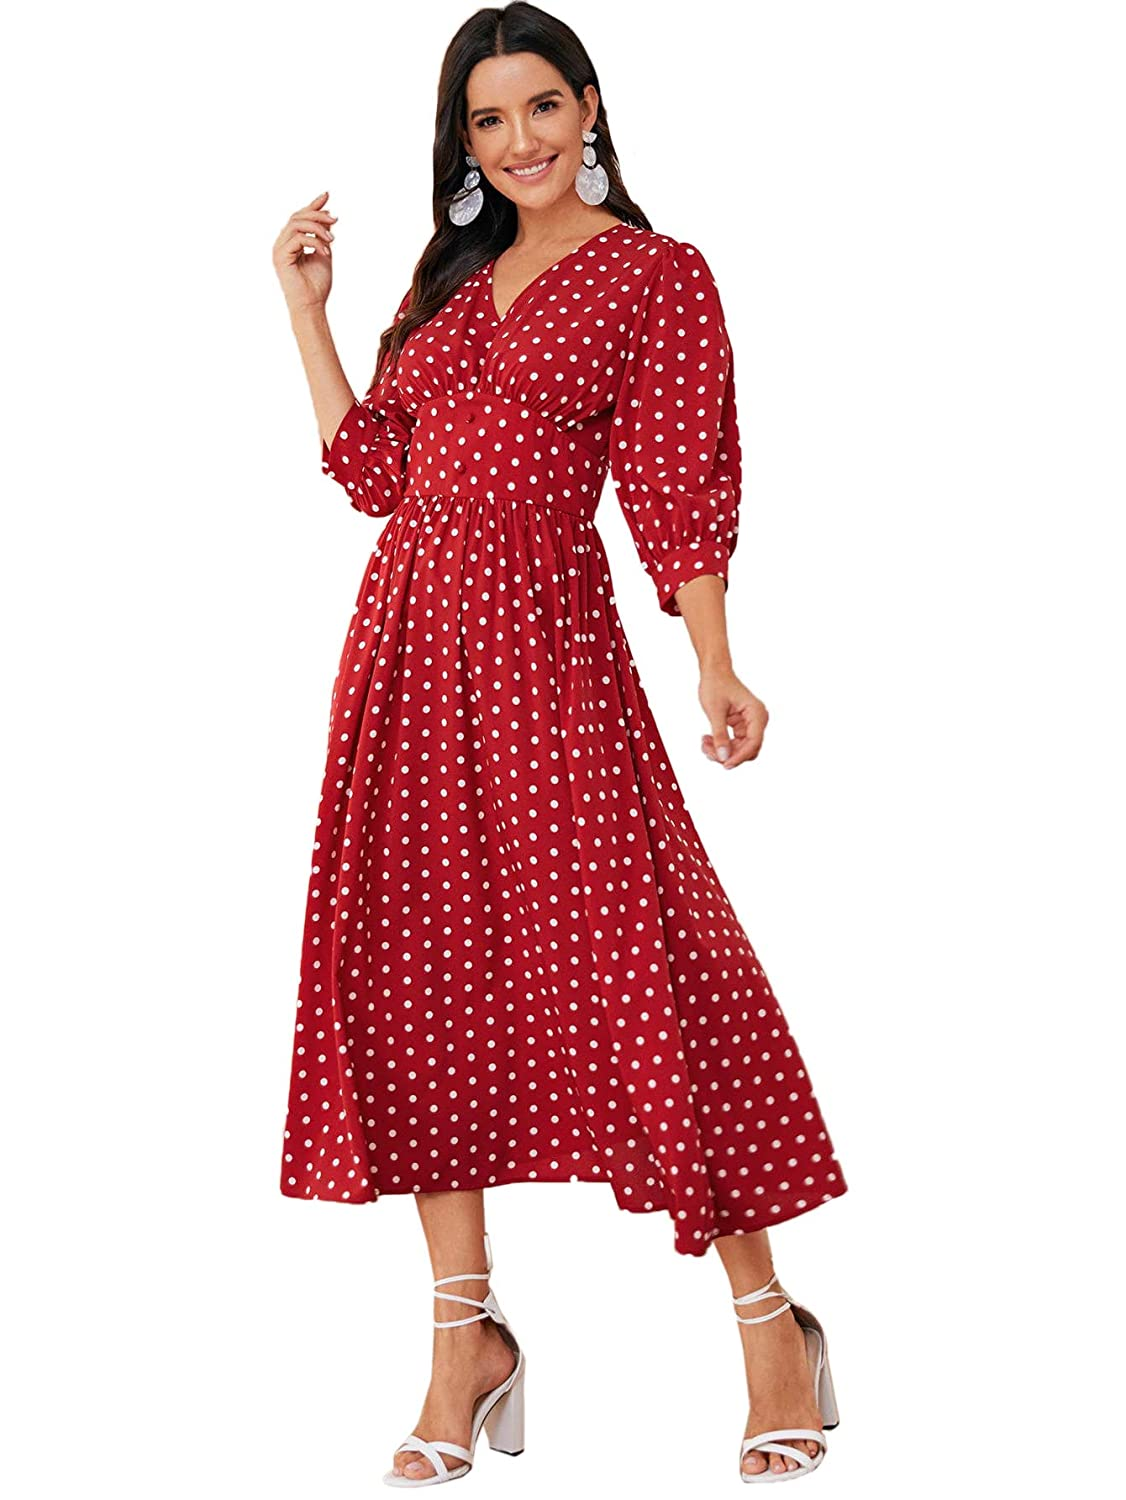 1930s Day Dresses, Afternoon Dresses History Verdusa Womens Polka Dot Buttoned Bishop 3/4 Sleeve Fit & Flare Maxi Dress $37.99 AT vintagedancer.com